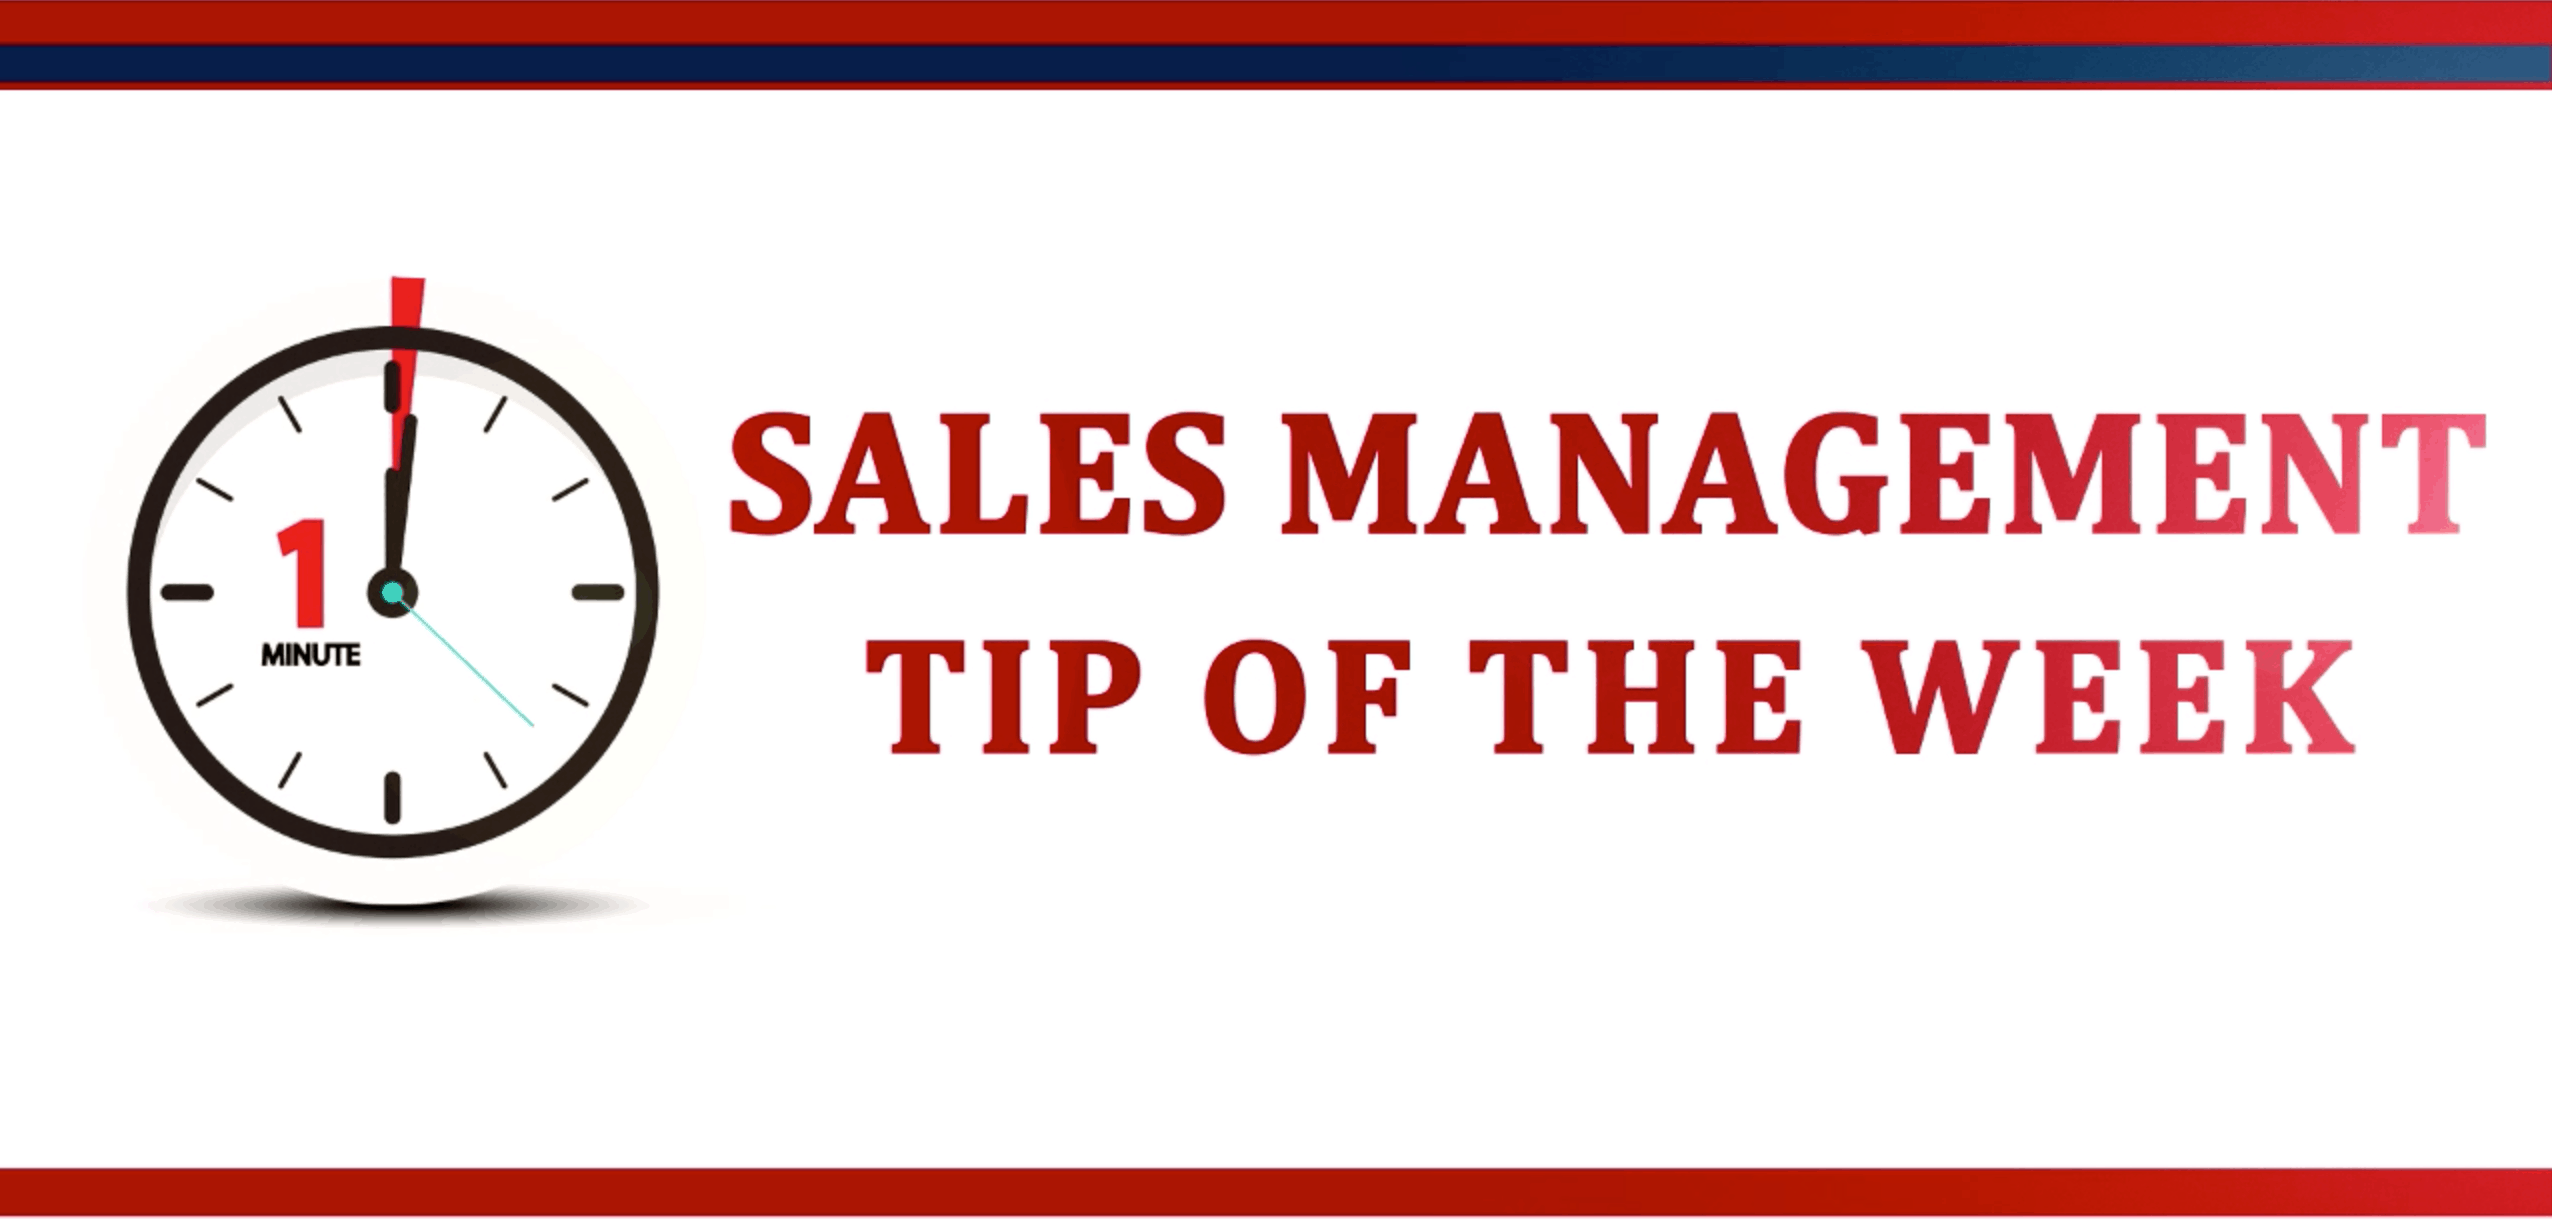 Weekly Sales Management Tip